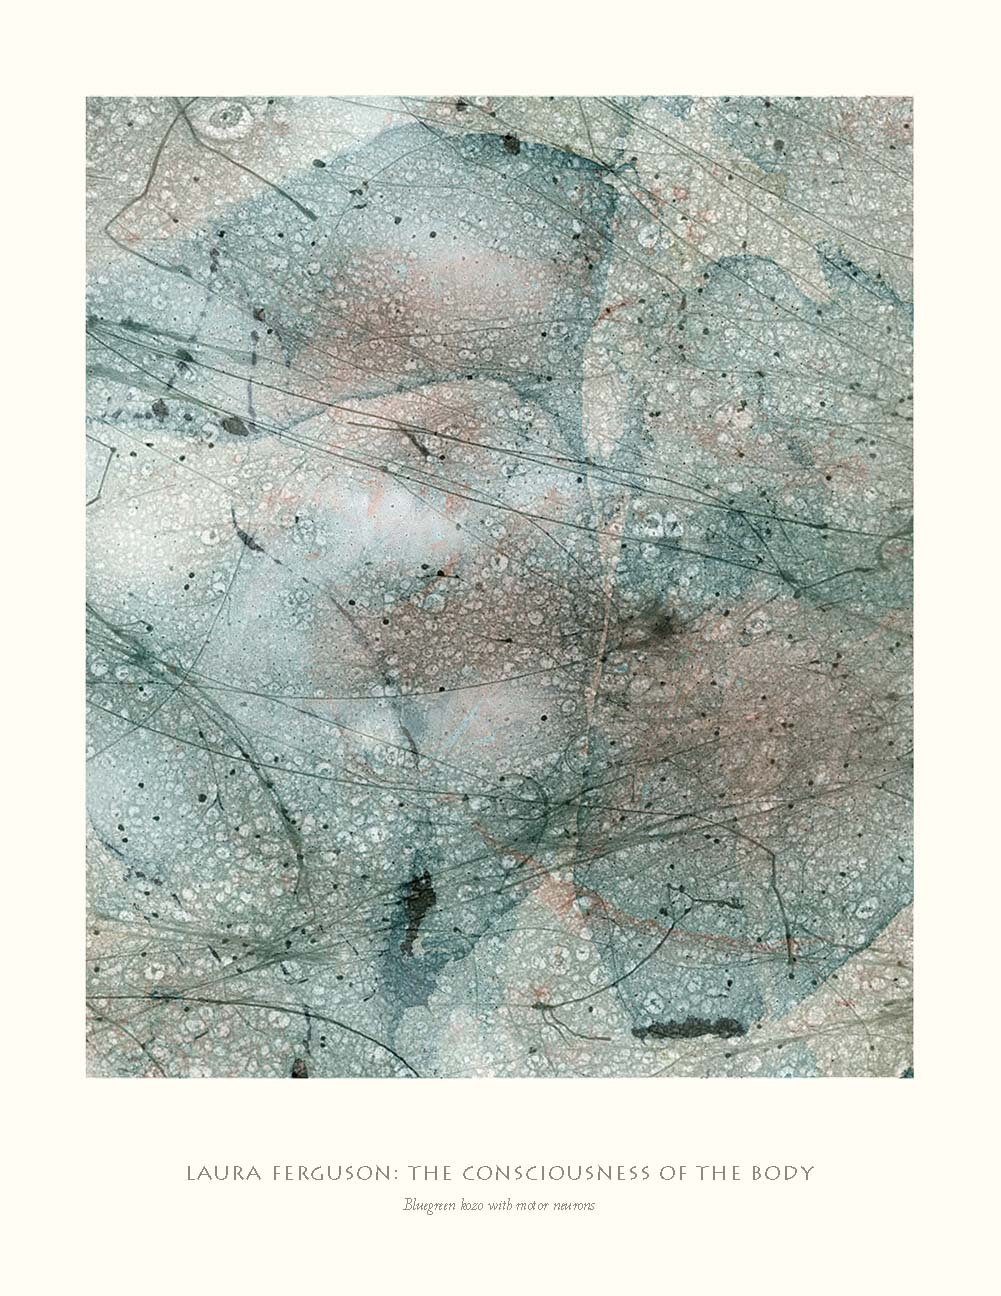 Bluegreen kozo with motor neurons  (Consciousness gallery)